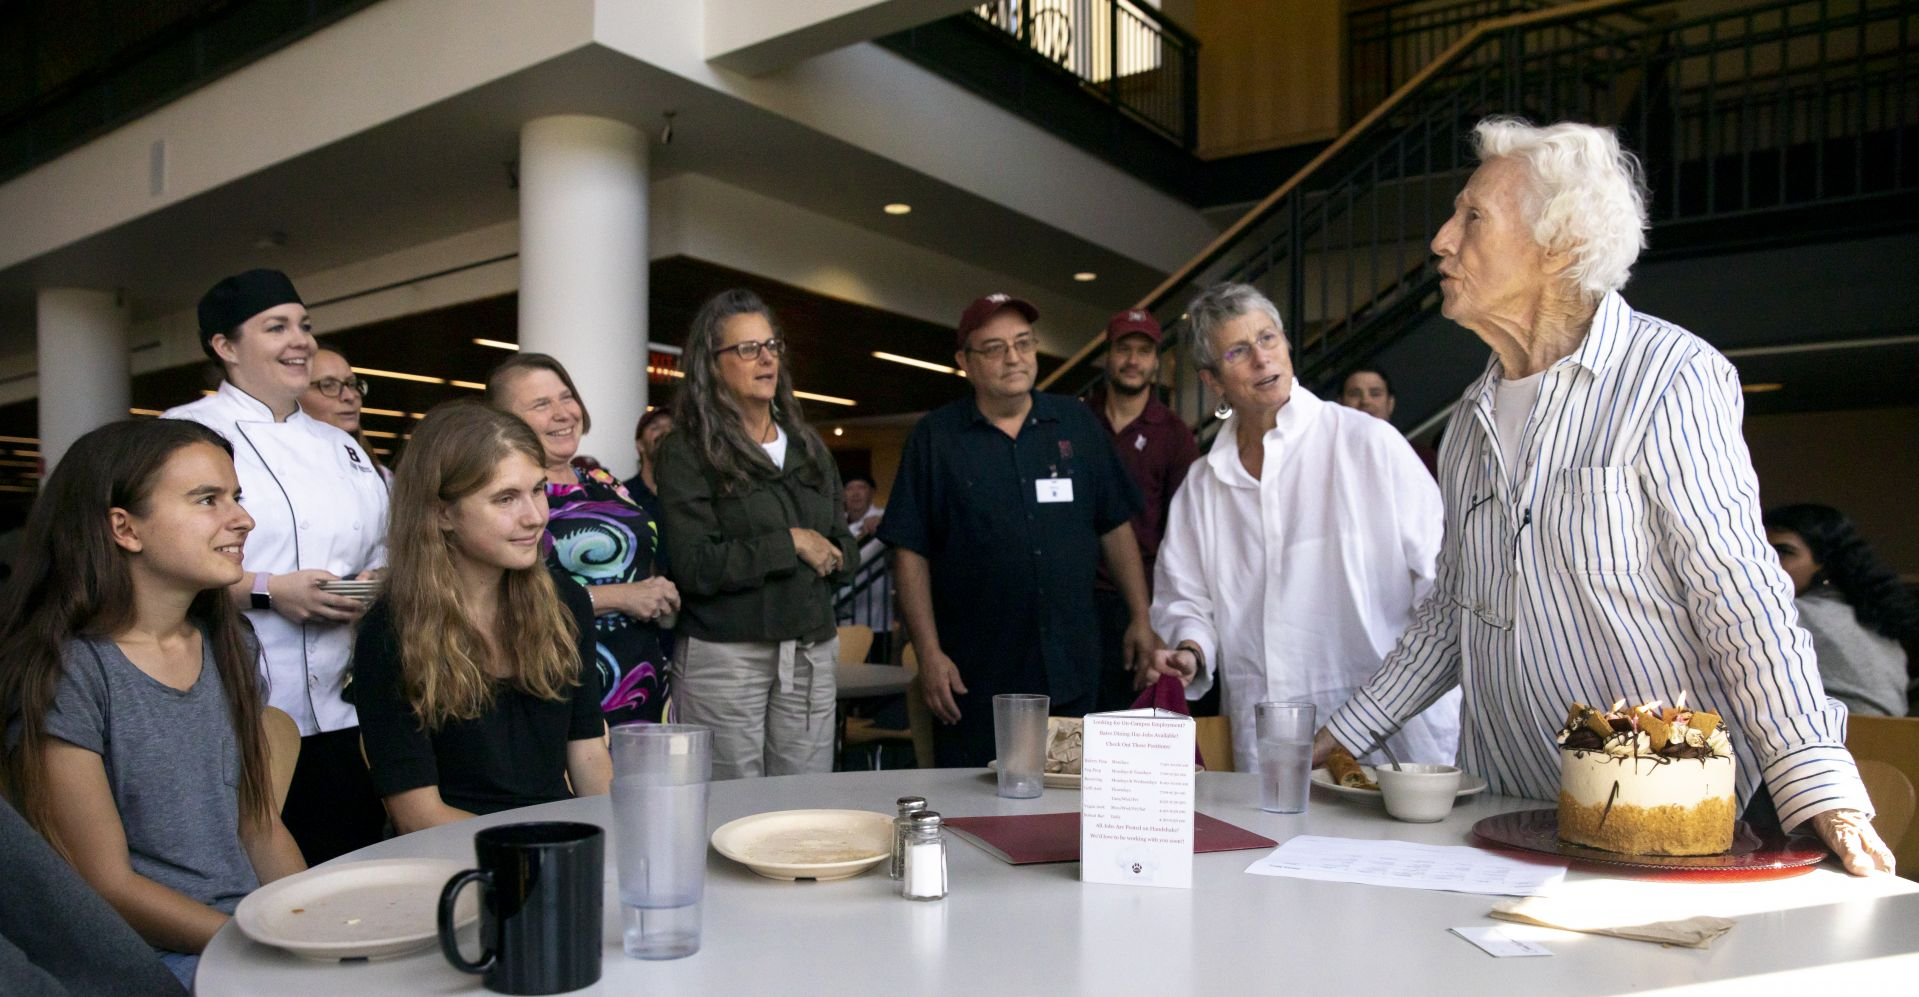 """After a 100th birthday cake — baked and delivered by Dining Services — arrived at her table, Dorothy Foster Kern '42 rises to thank everyone for her birthday lunch at Commons. """"Thank you so much,"""" she said. """"I am so proud to have gone to Bates!"""" Also joining the lunch were students Vanessa Paolella '21 (seated, left) and Abby Hamilton '21 (next to Paolella) and James Jones '20, not pictured."""